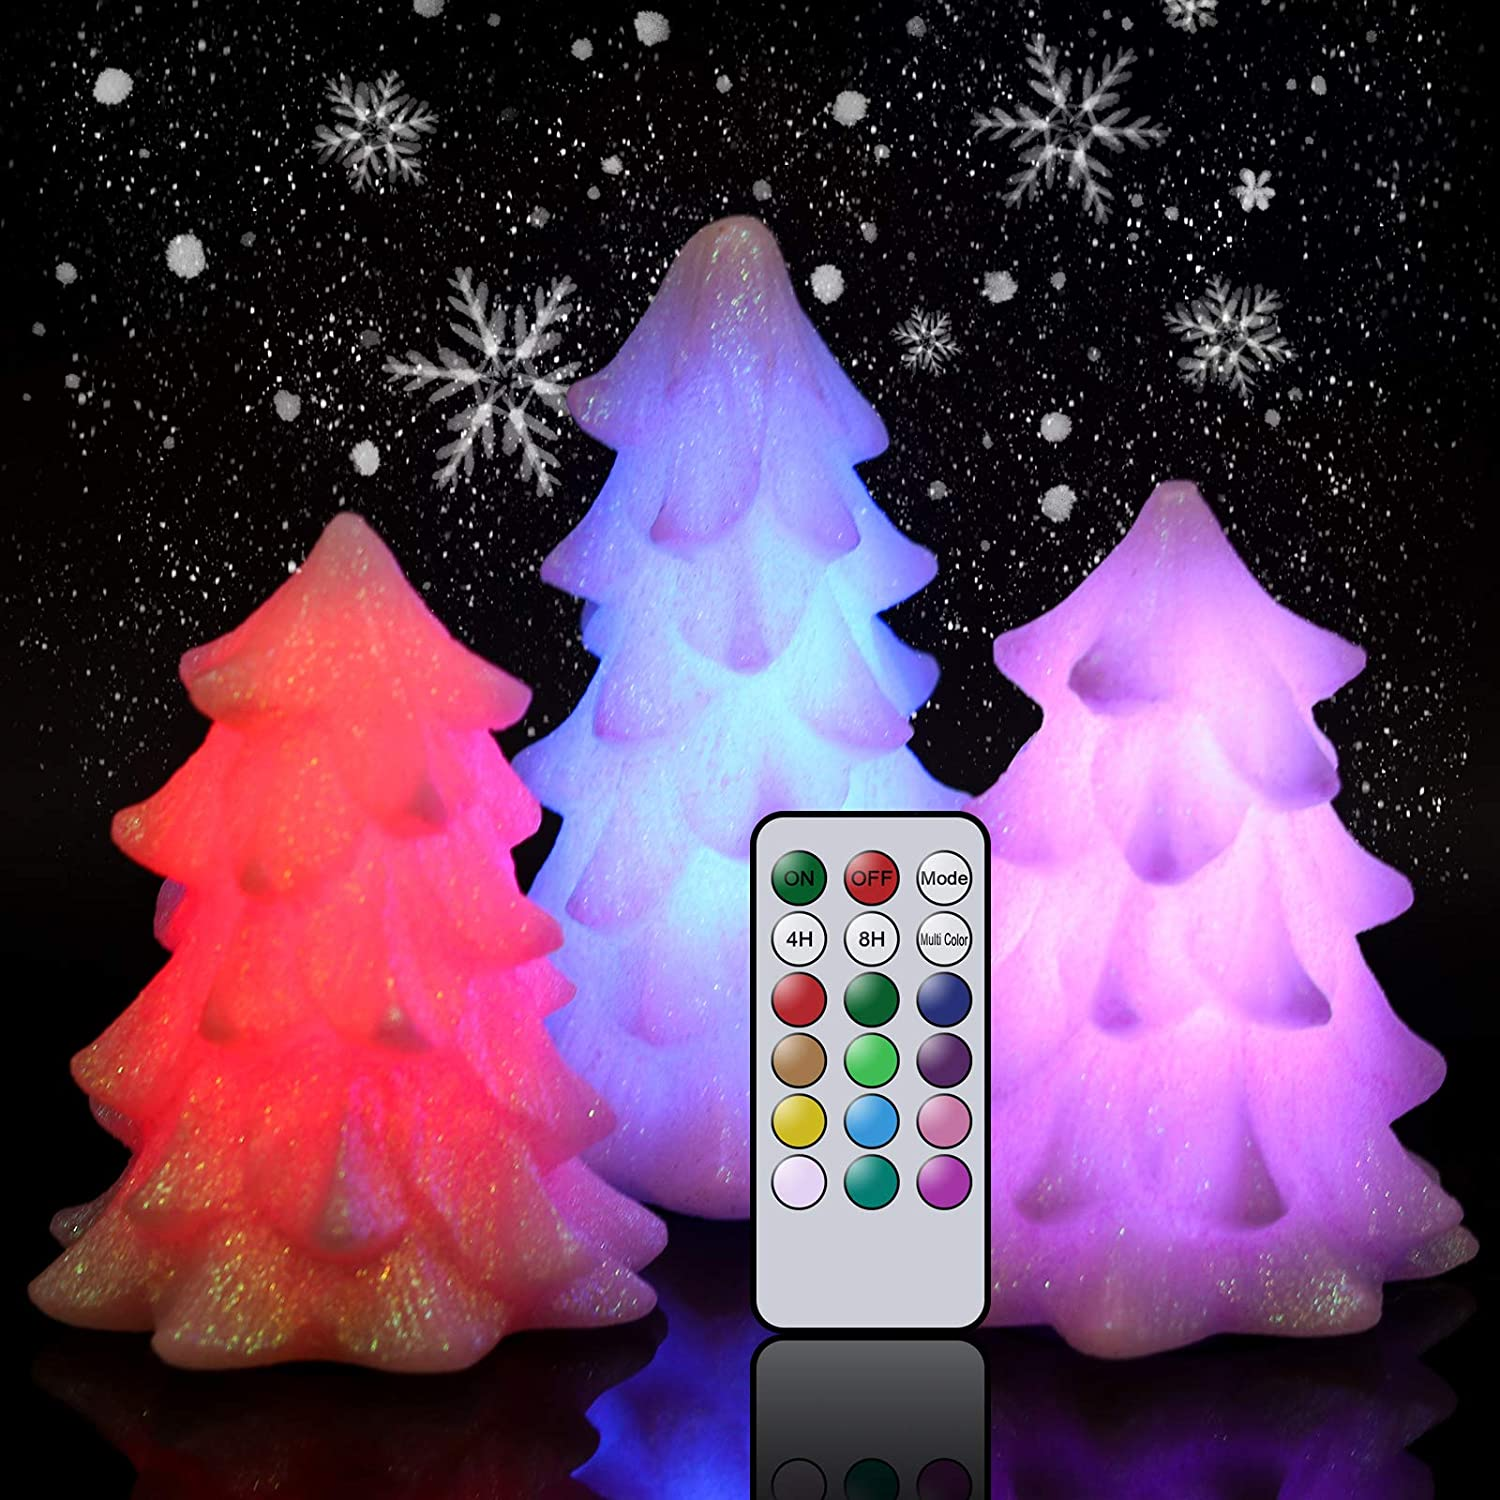 Wondise Glittering Christmas Tree Shaped Flameless Flickering Candles with Remote Timer, Multi Color Changing Battery Operated Wax LED Candles for Christmas Home Decoration Gift(White, Set of 3)